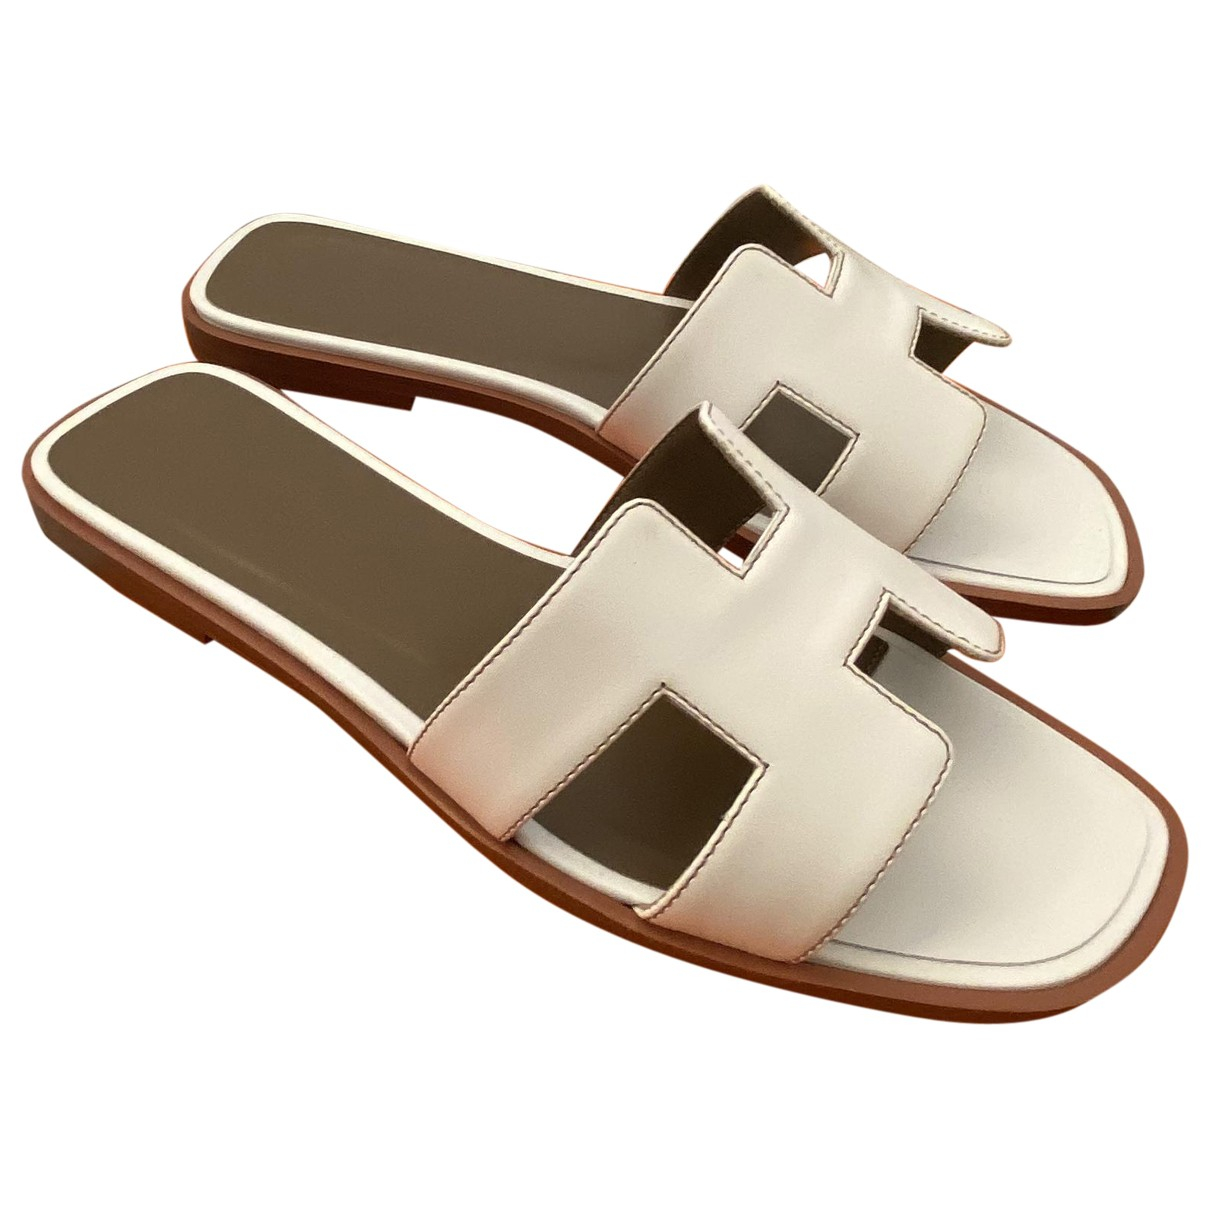 Hermès Oran White Leather Sandals for Women 37 EU